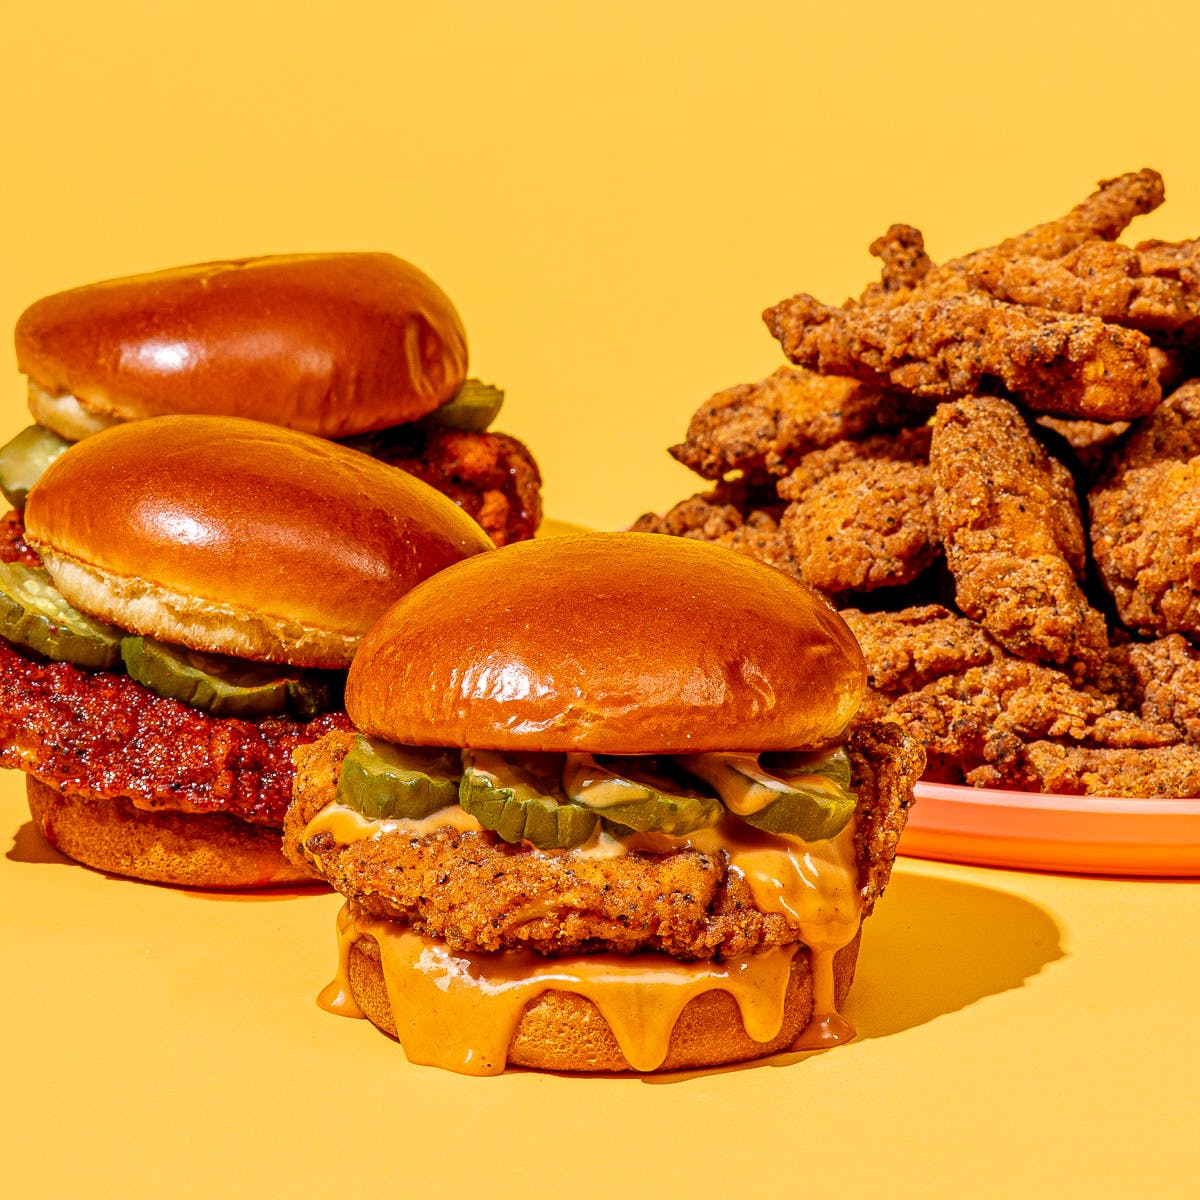 Did you hear the news?! #BigChickenShaq is now shipping NATIONWIDE with @Goldbelly! Enjoy our delicious crispy chicken sandwiches and tenders from anywhere in the United States! Use promo code GOLDBELLYIT to save $15 on your first purchase.  Order Now: